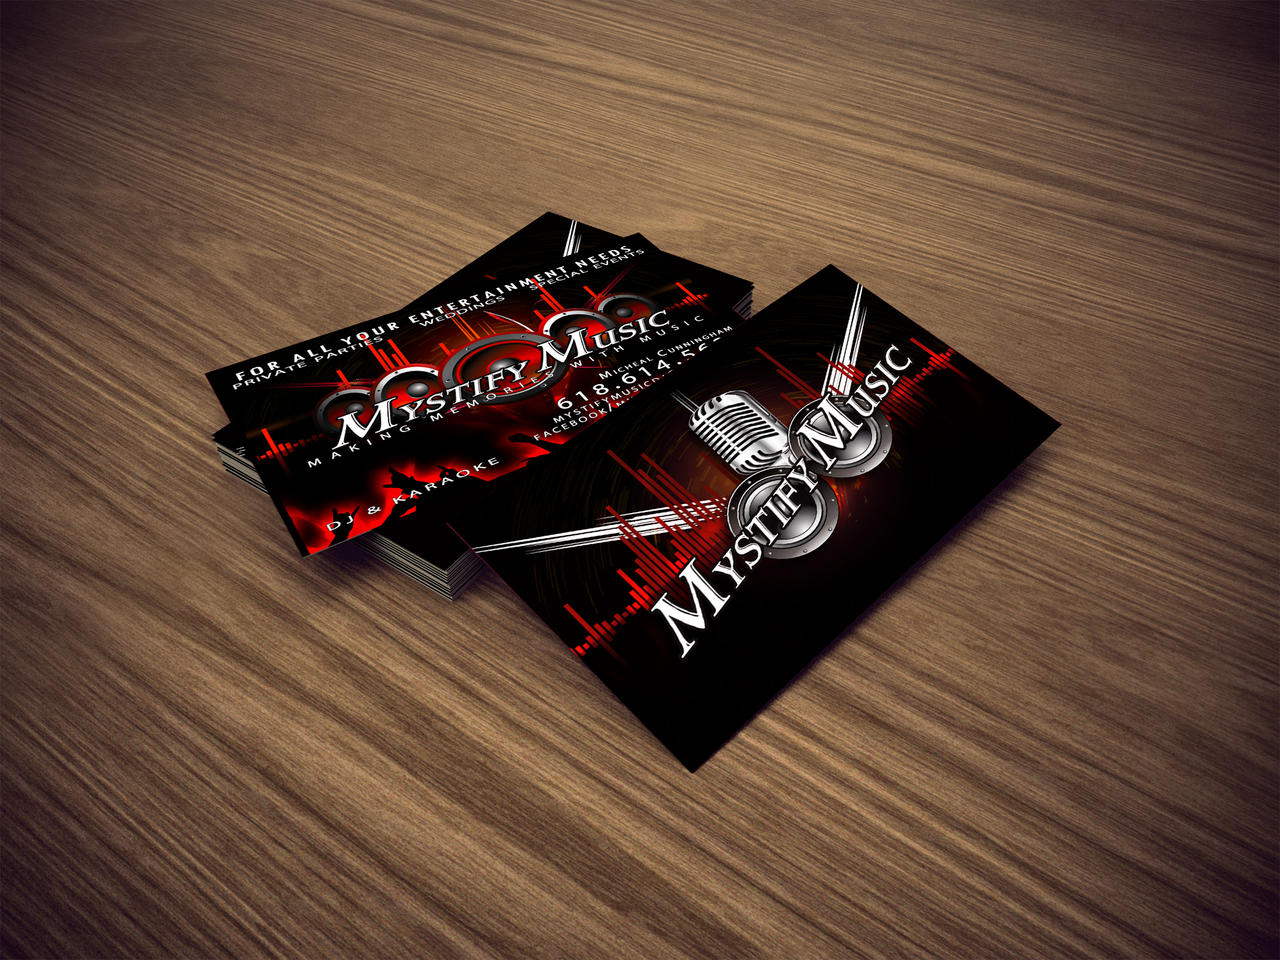 Mystify music business cards by digitalphenom on deviantart mystify music business cards by digitalphenom mystify music business cards by digitalphenom magicingreecefo Images